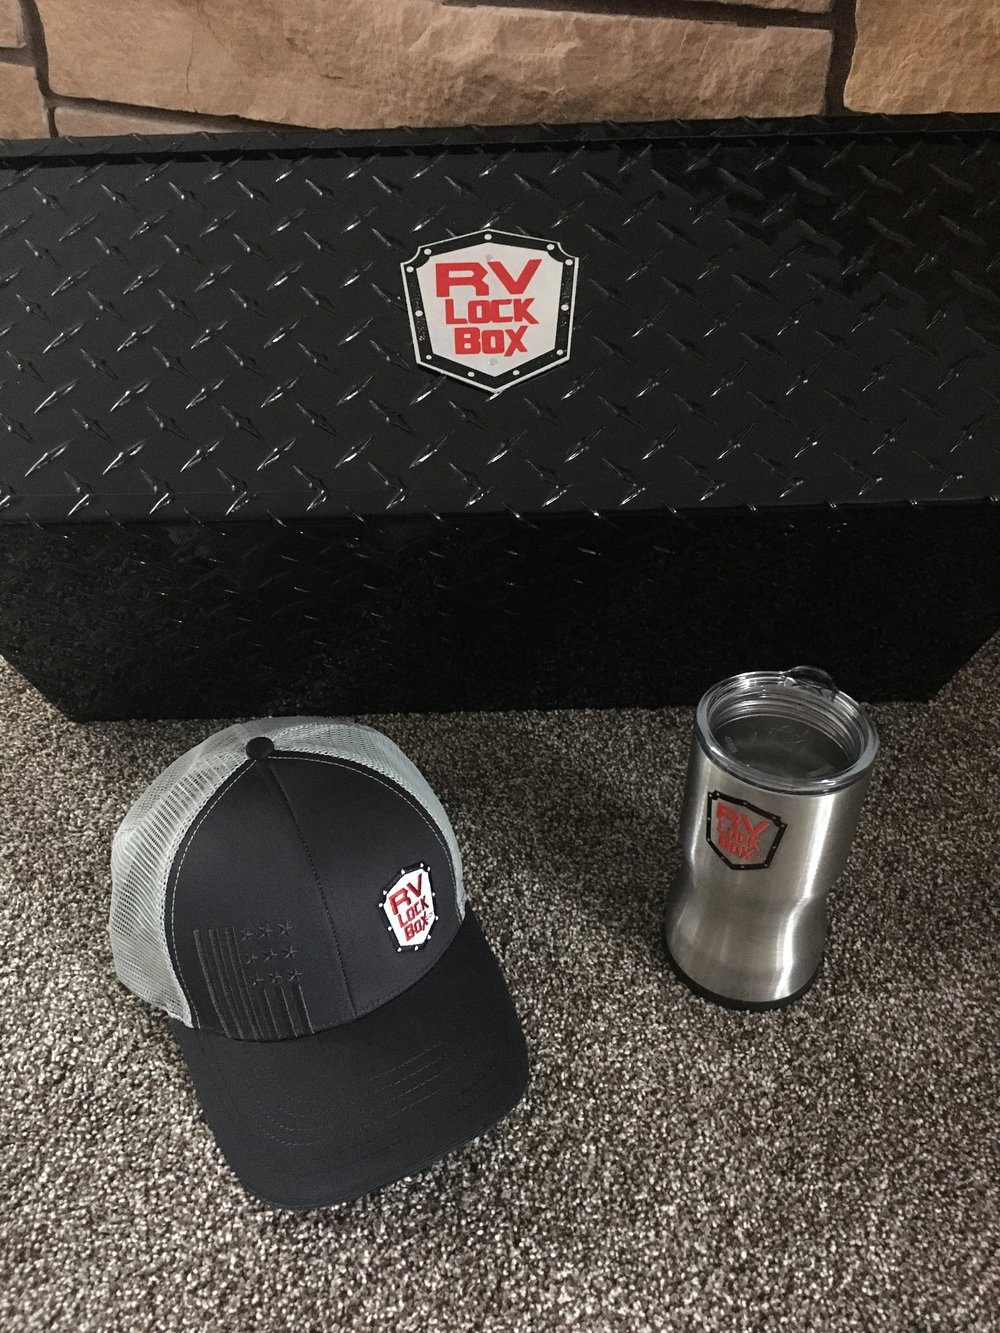 Don't wait any longer.  These battery lock boxes will last a lifetime and will save your family money.  We have a 100% satisfaction record.  We have just a few free hats left. Get yours today. -